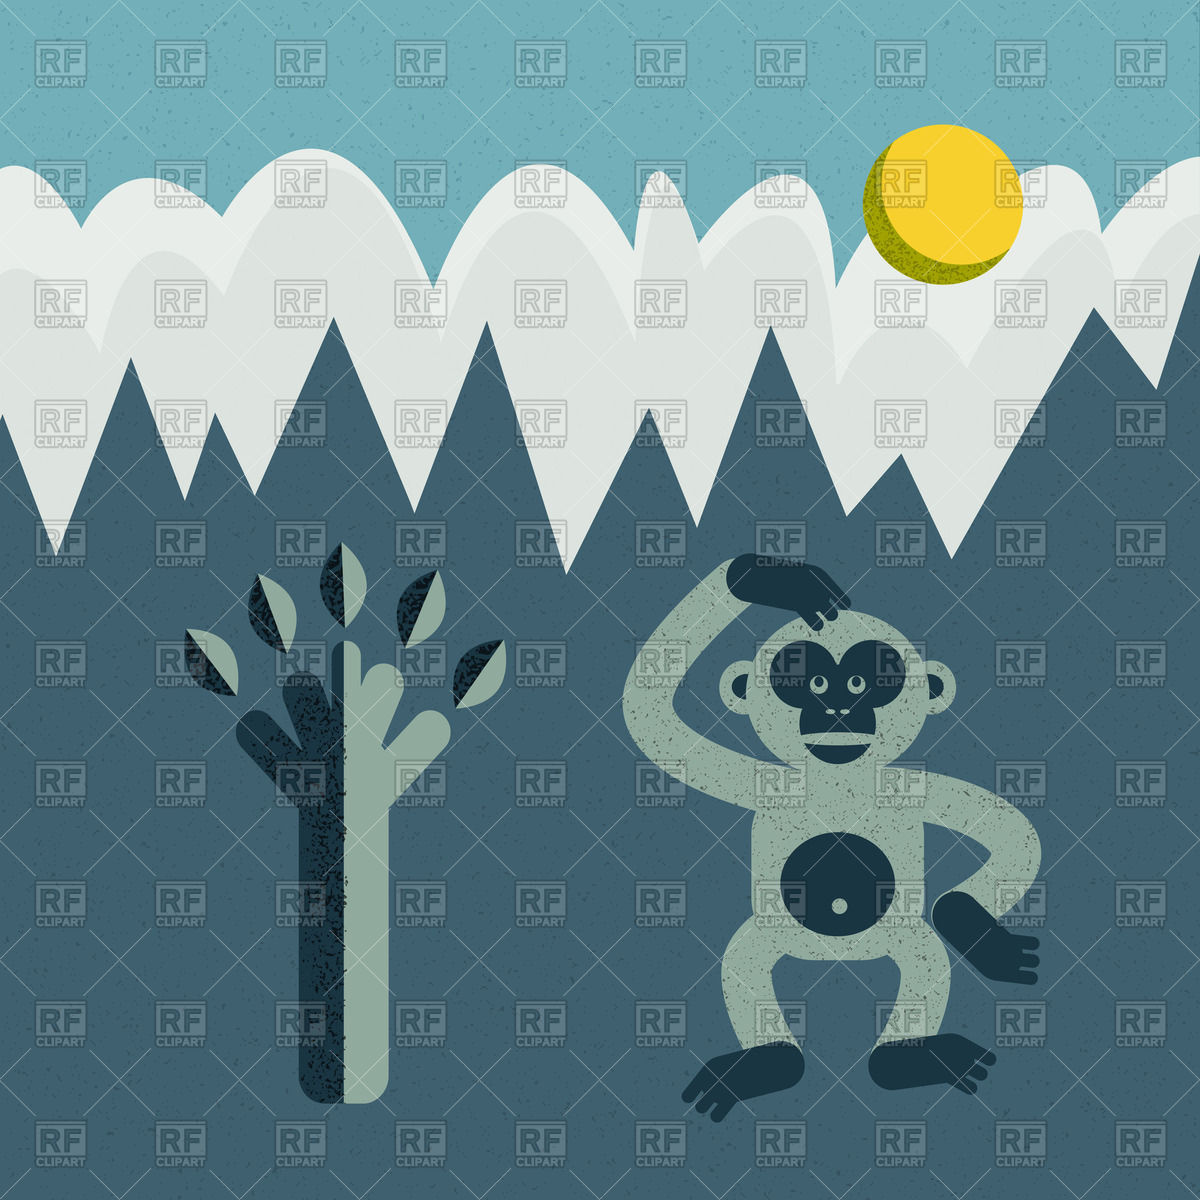 Monkey near tree in front of snowbound mountains Vector Image.